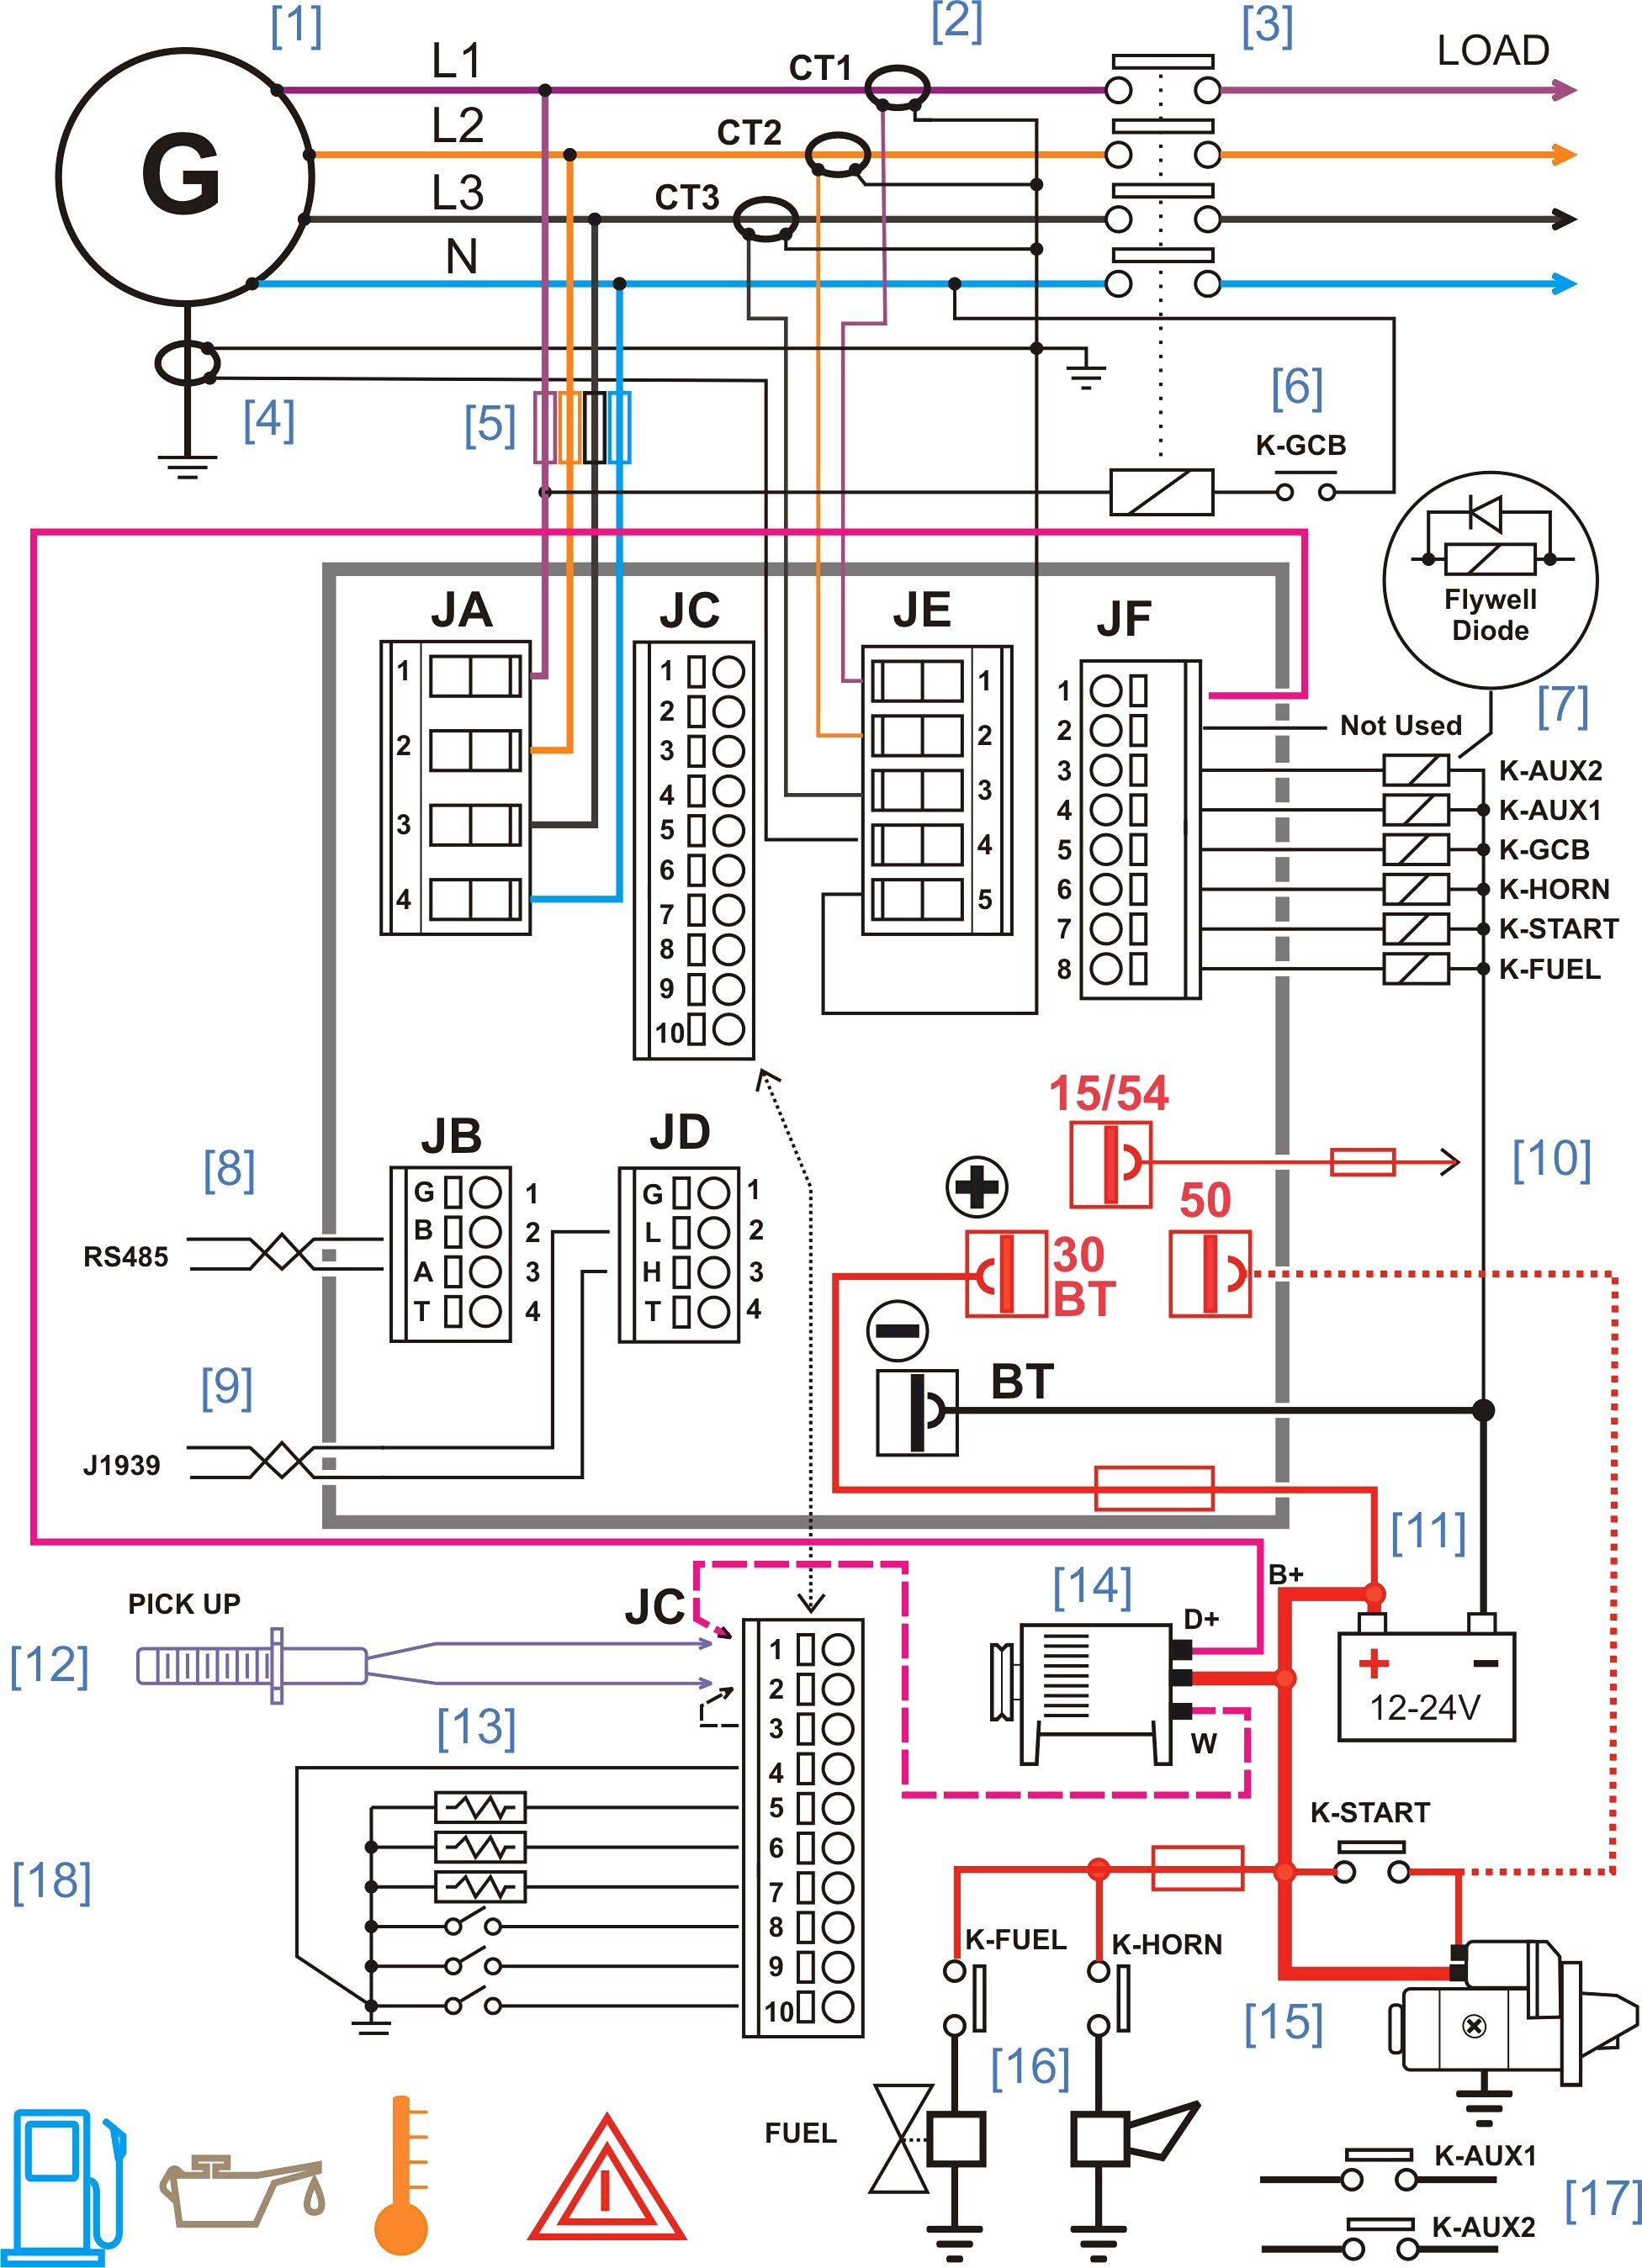 12v Battery Isolator Wiring Diagram - Wiring Solutions